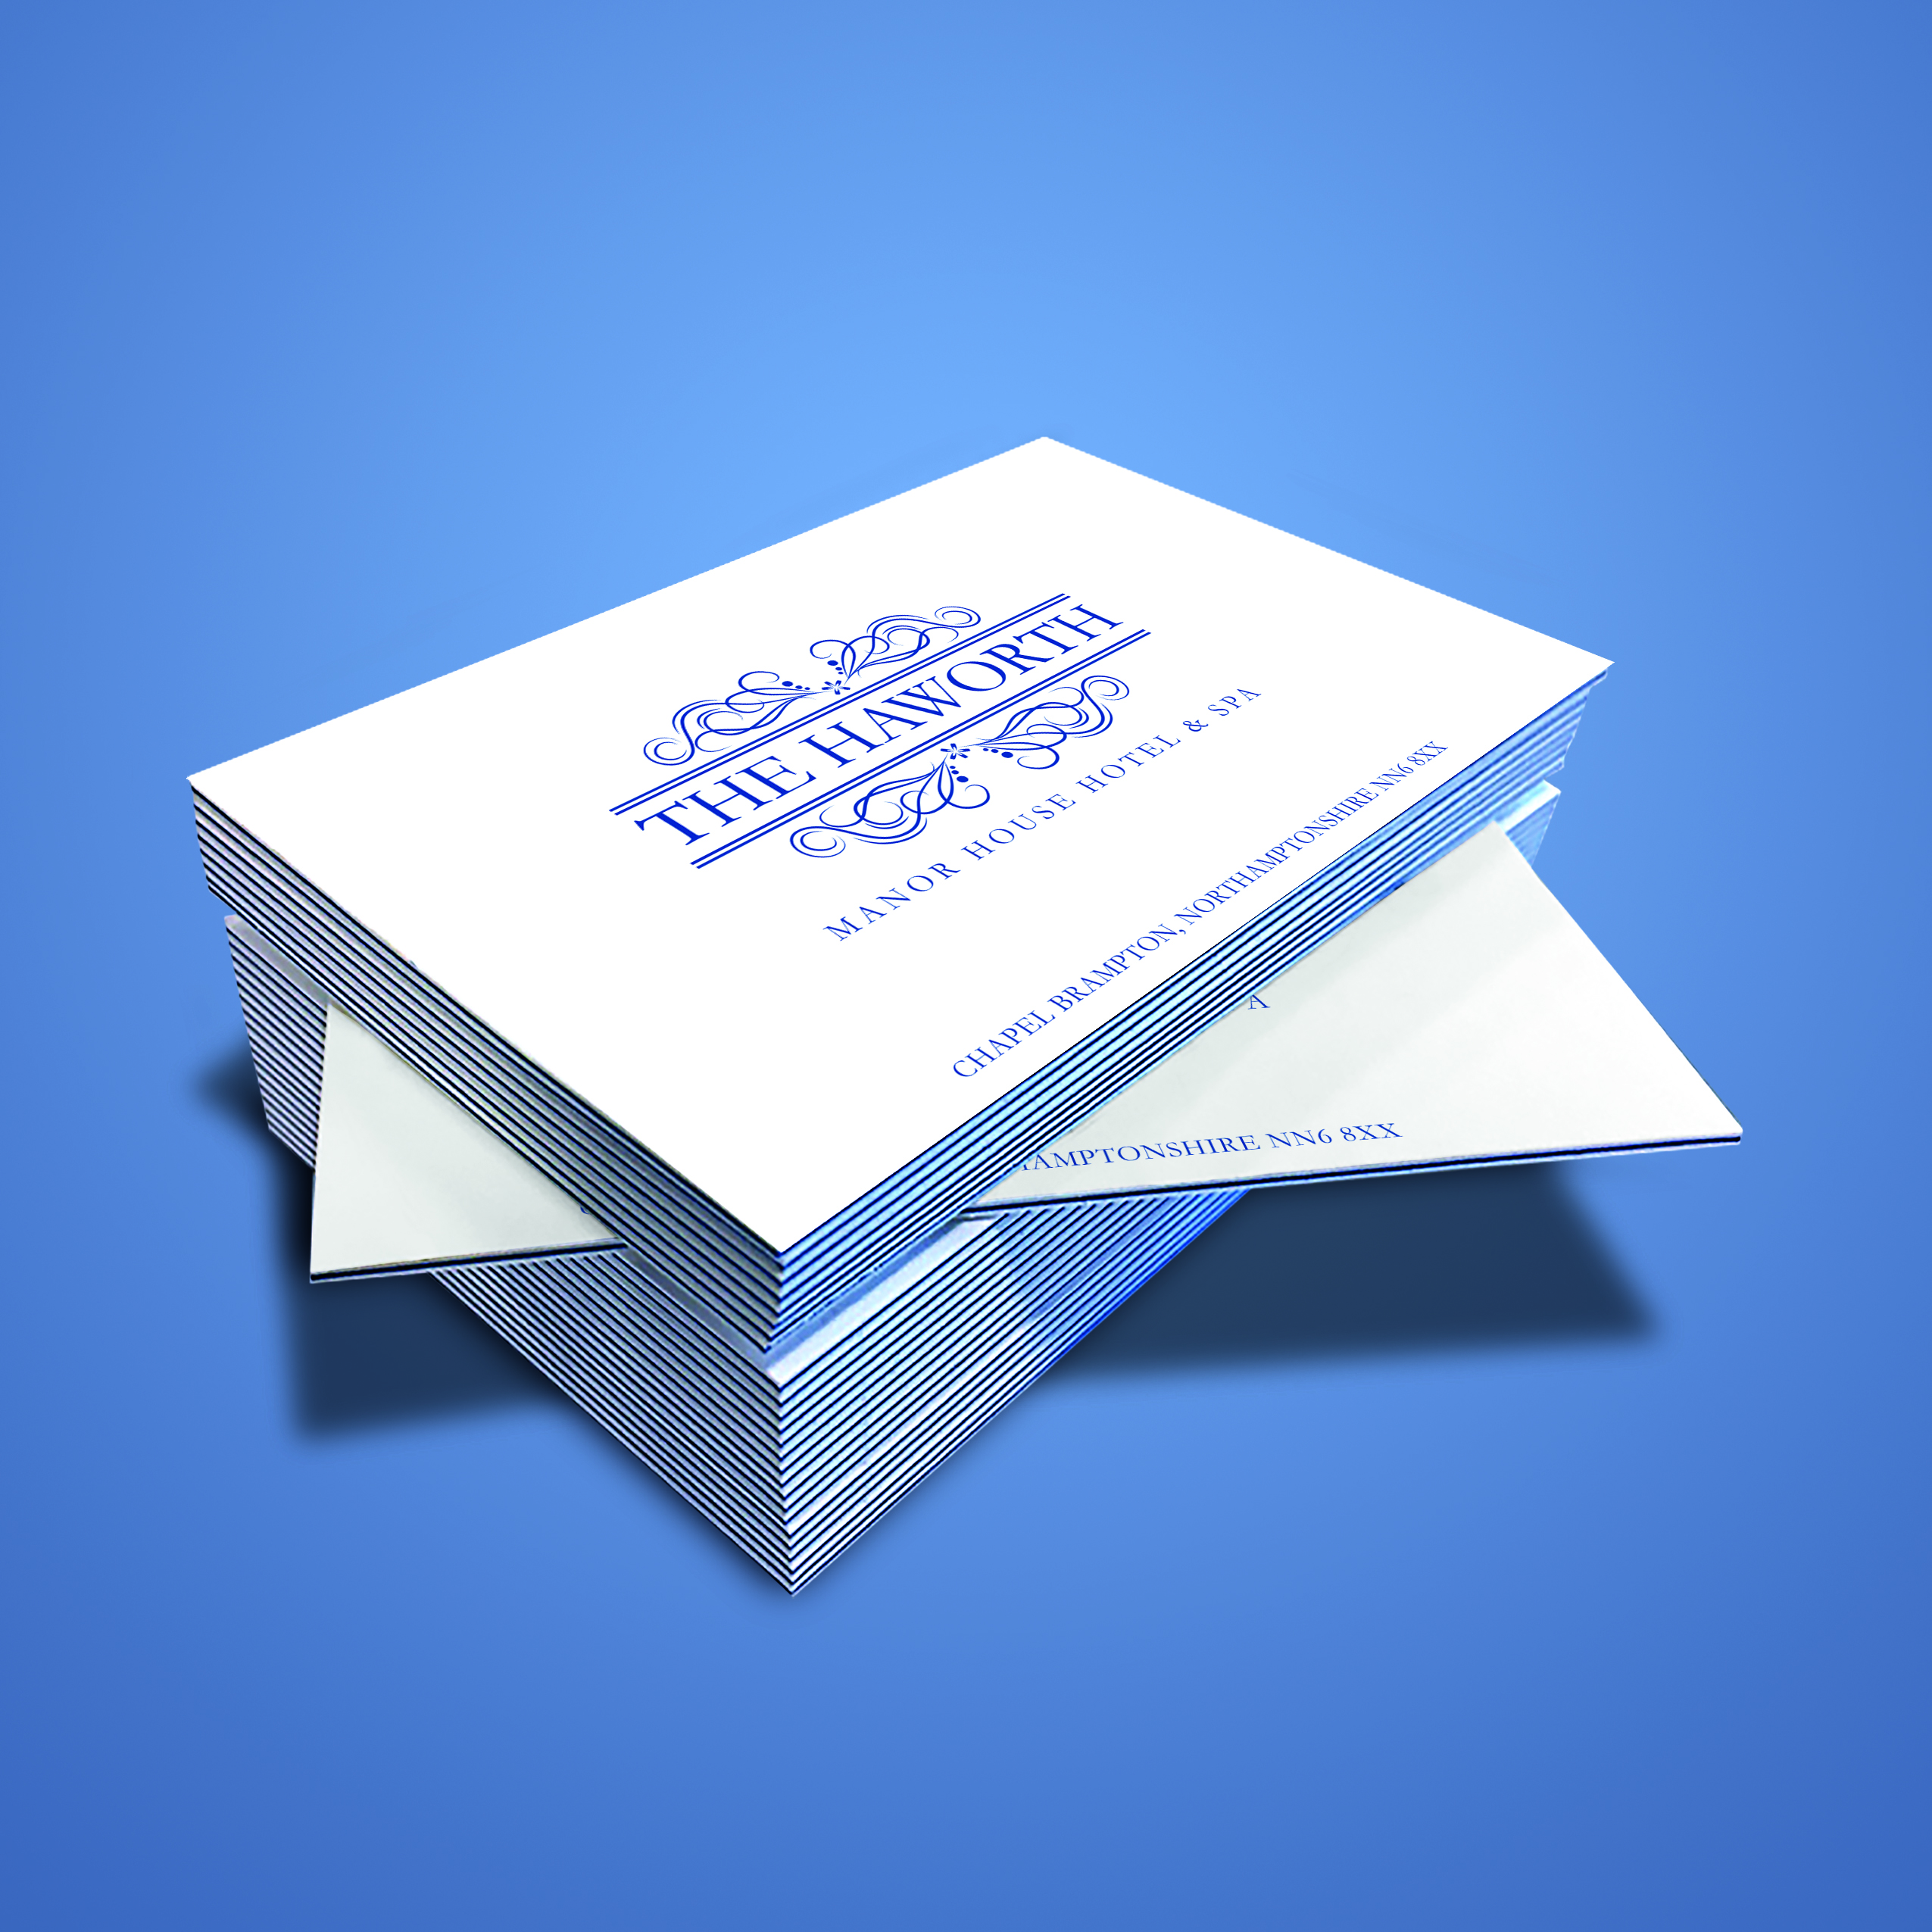 Printing firefly new media amazing business cards reheart Images